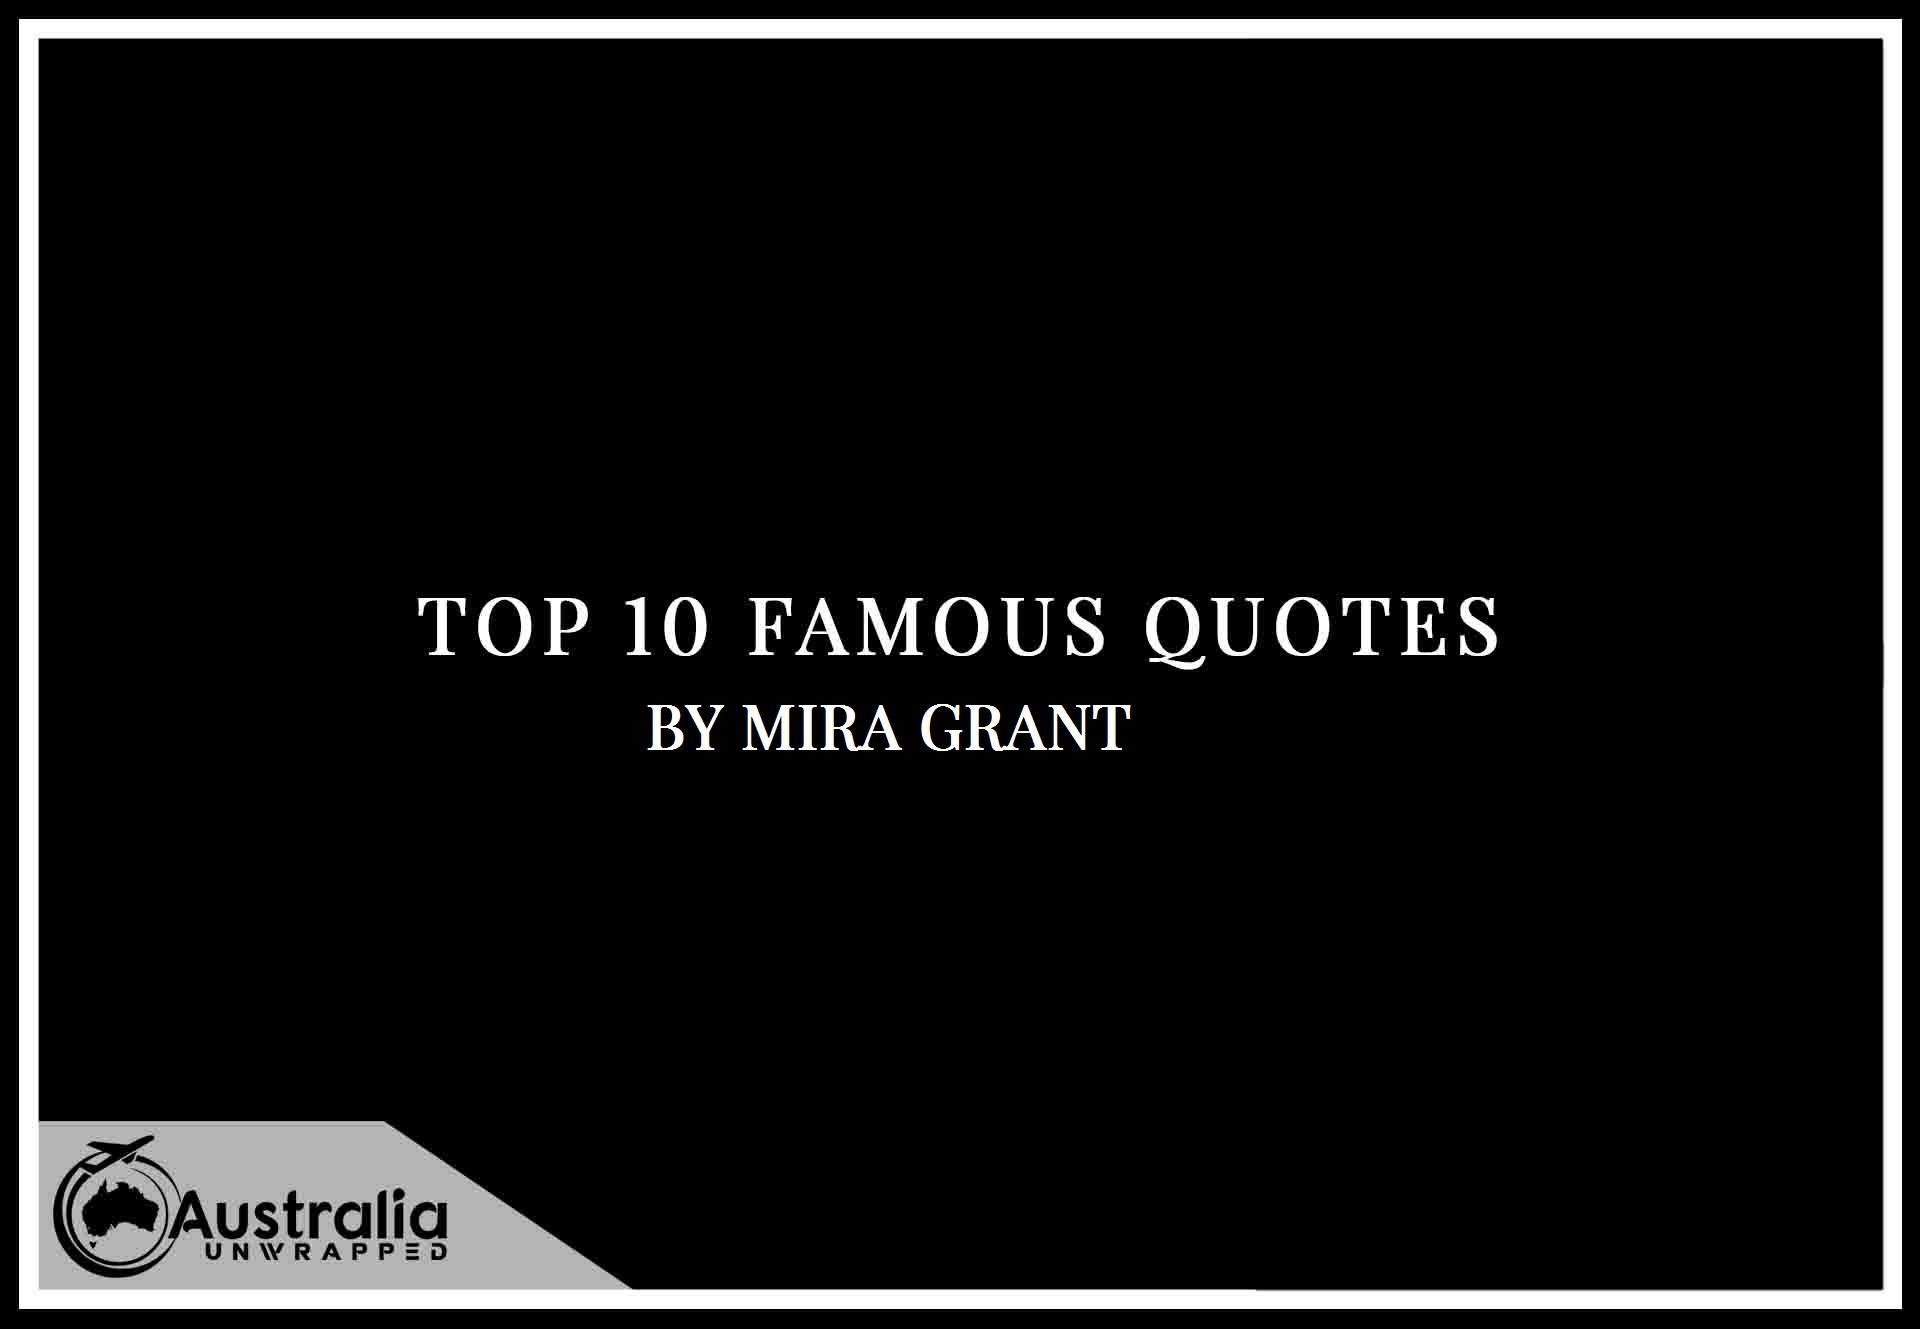 Mira Grant's Top 10 Popular and Famous Quotes